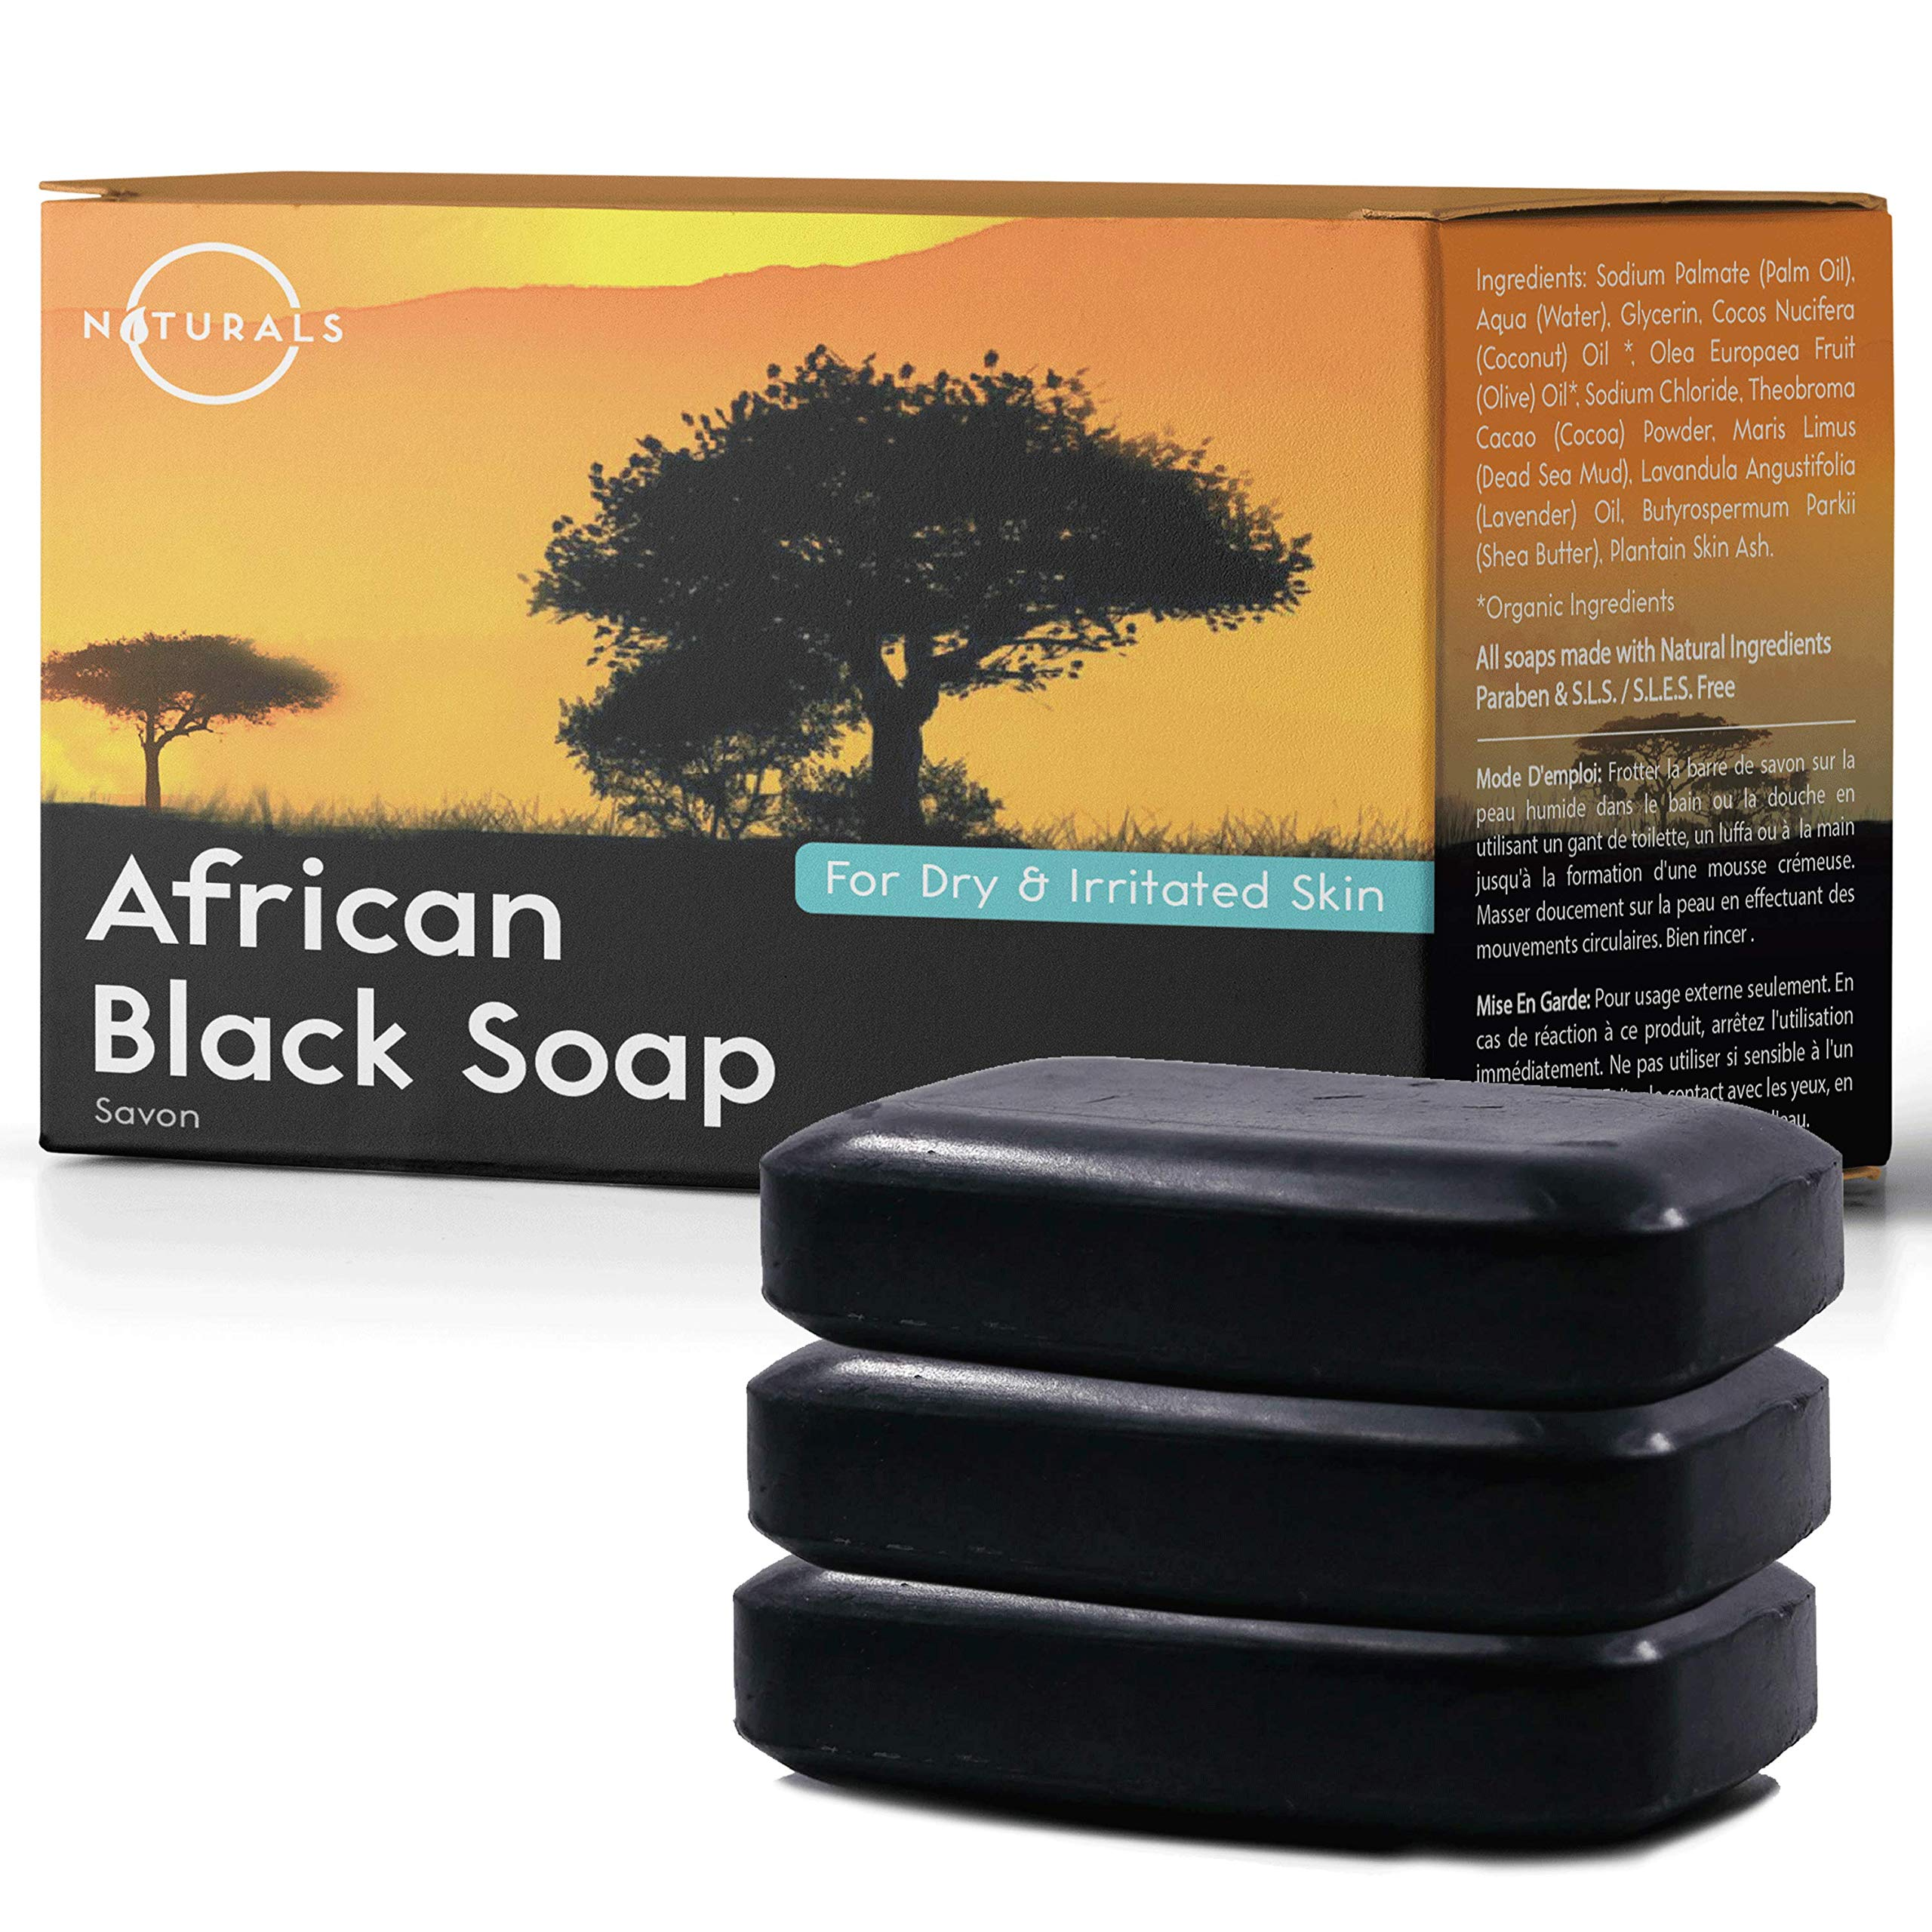 O Naturals African Black Soap Bar. Acne Treatment Natural Face & Body Wash for Clear Skin. Treats Oily Skin, Rashes, Eczema, Redness. Exfoliates Dead Skin. Shea Butter, Plantain, Vegan. 3-Piece 4Oz